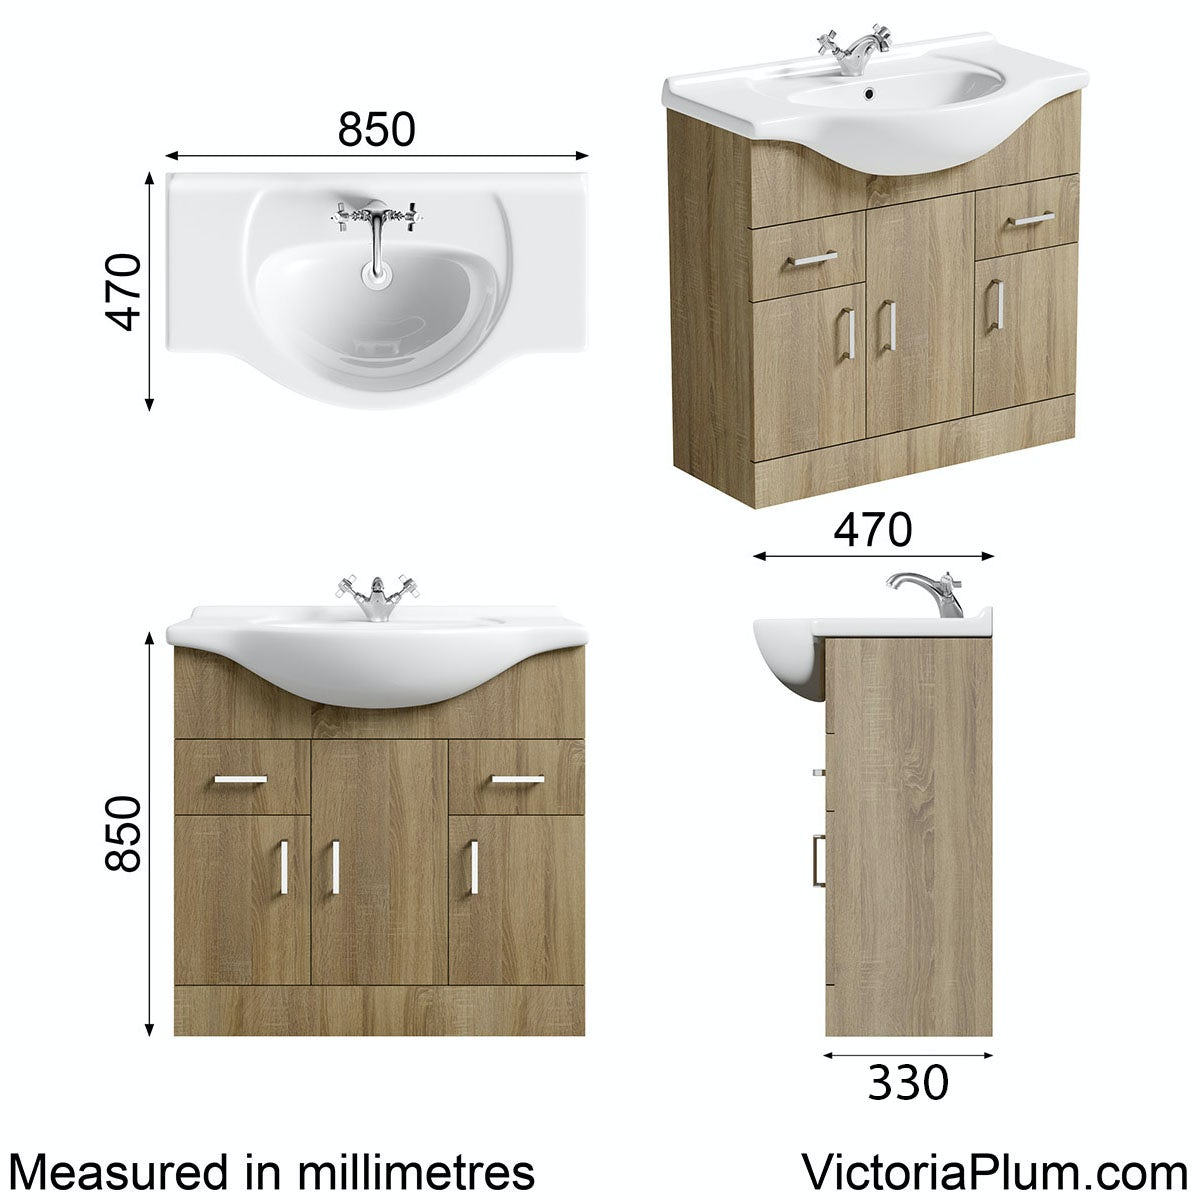 Dimensions for Sienna oak vanity unit and basin 850mm